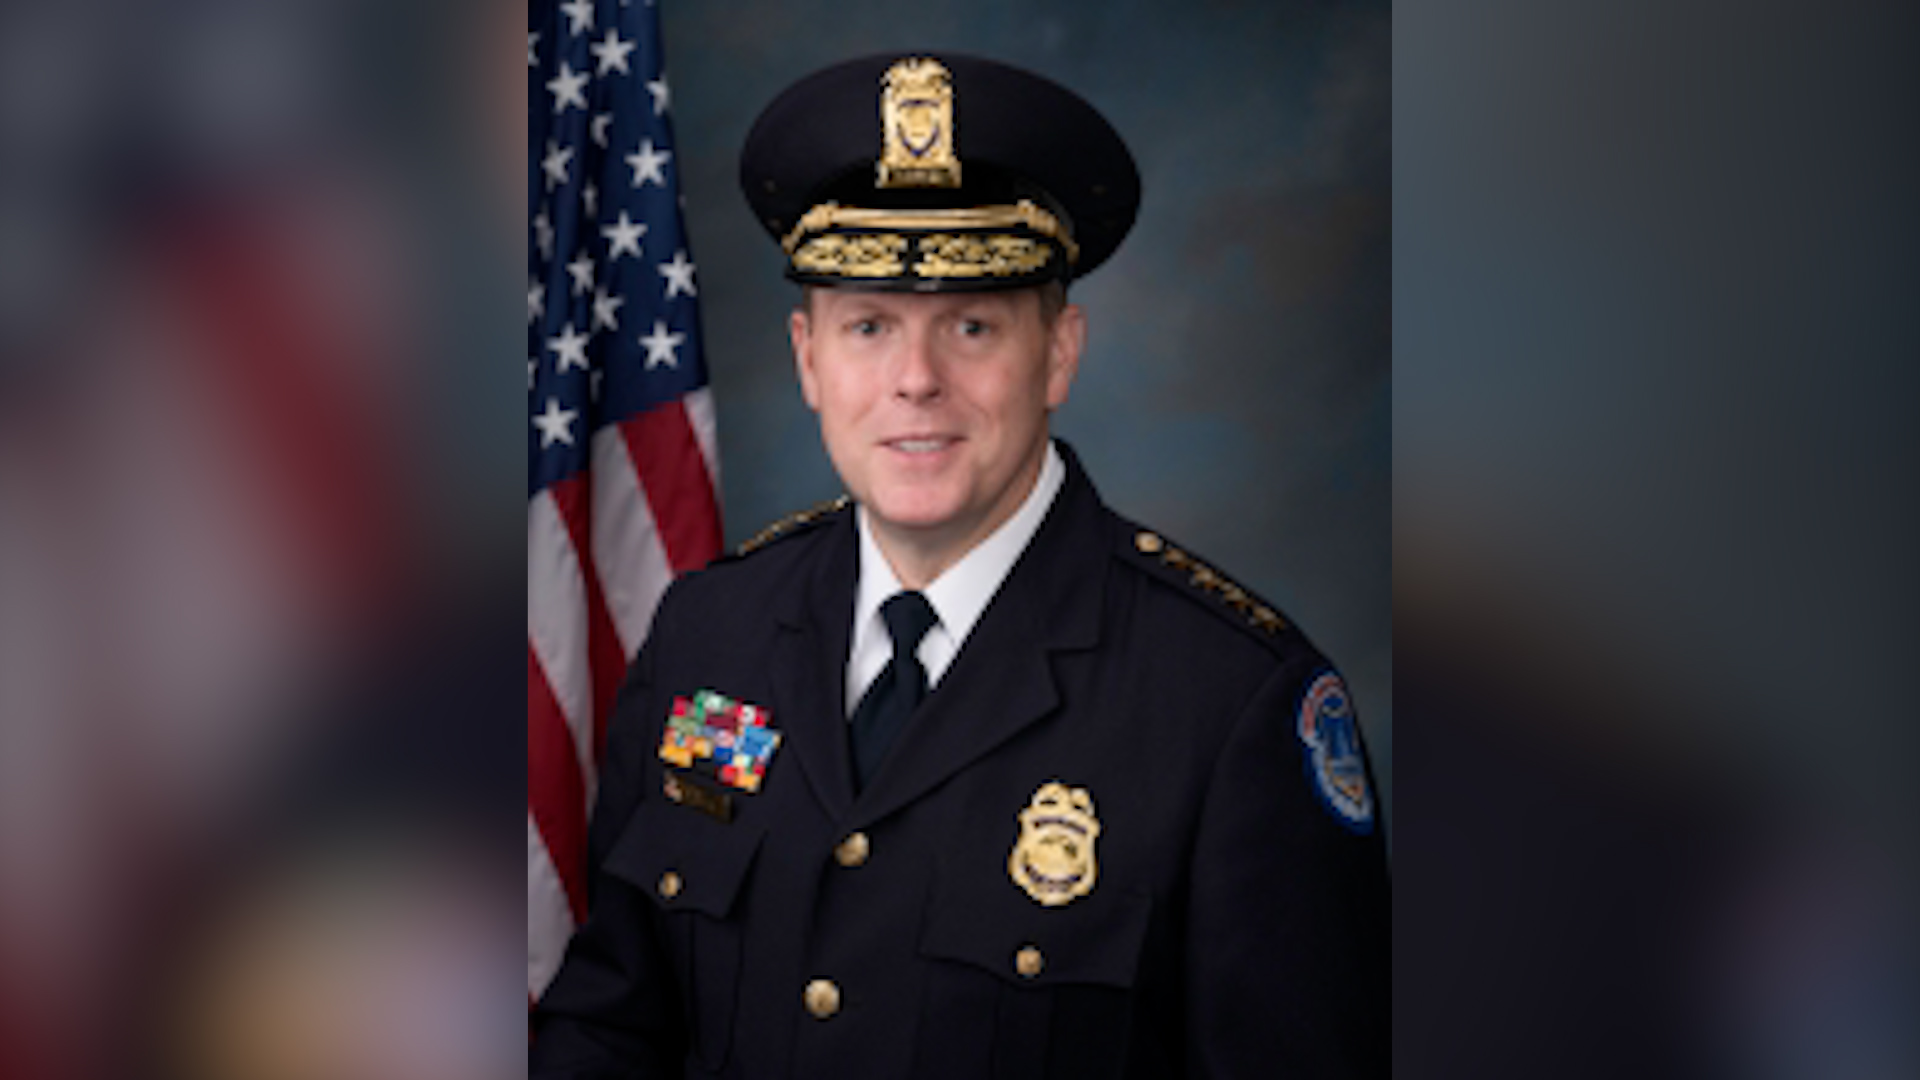 Capitol Police Chief Steven Sund is pictured in an undated photo on the agency's website. (U.S. Capitol Police)